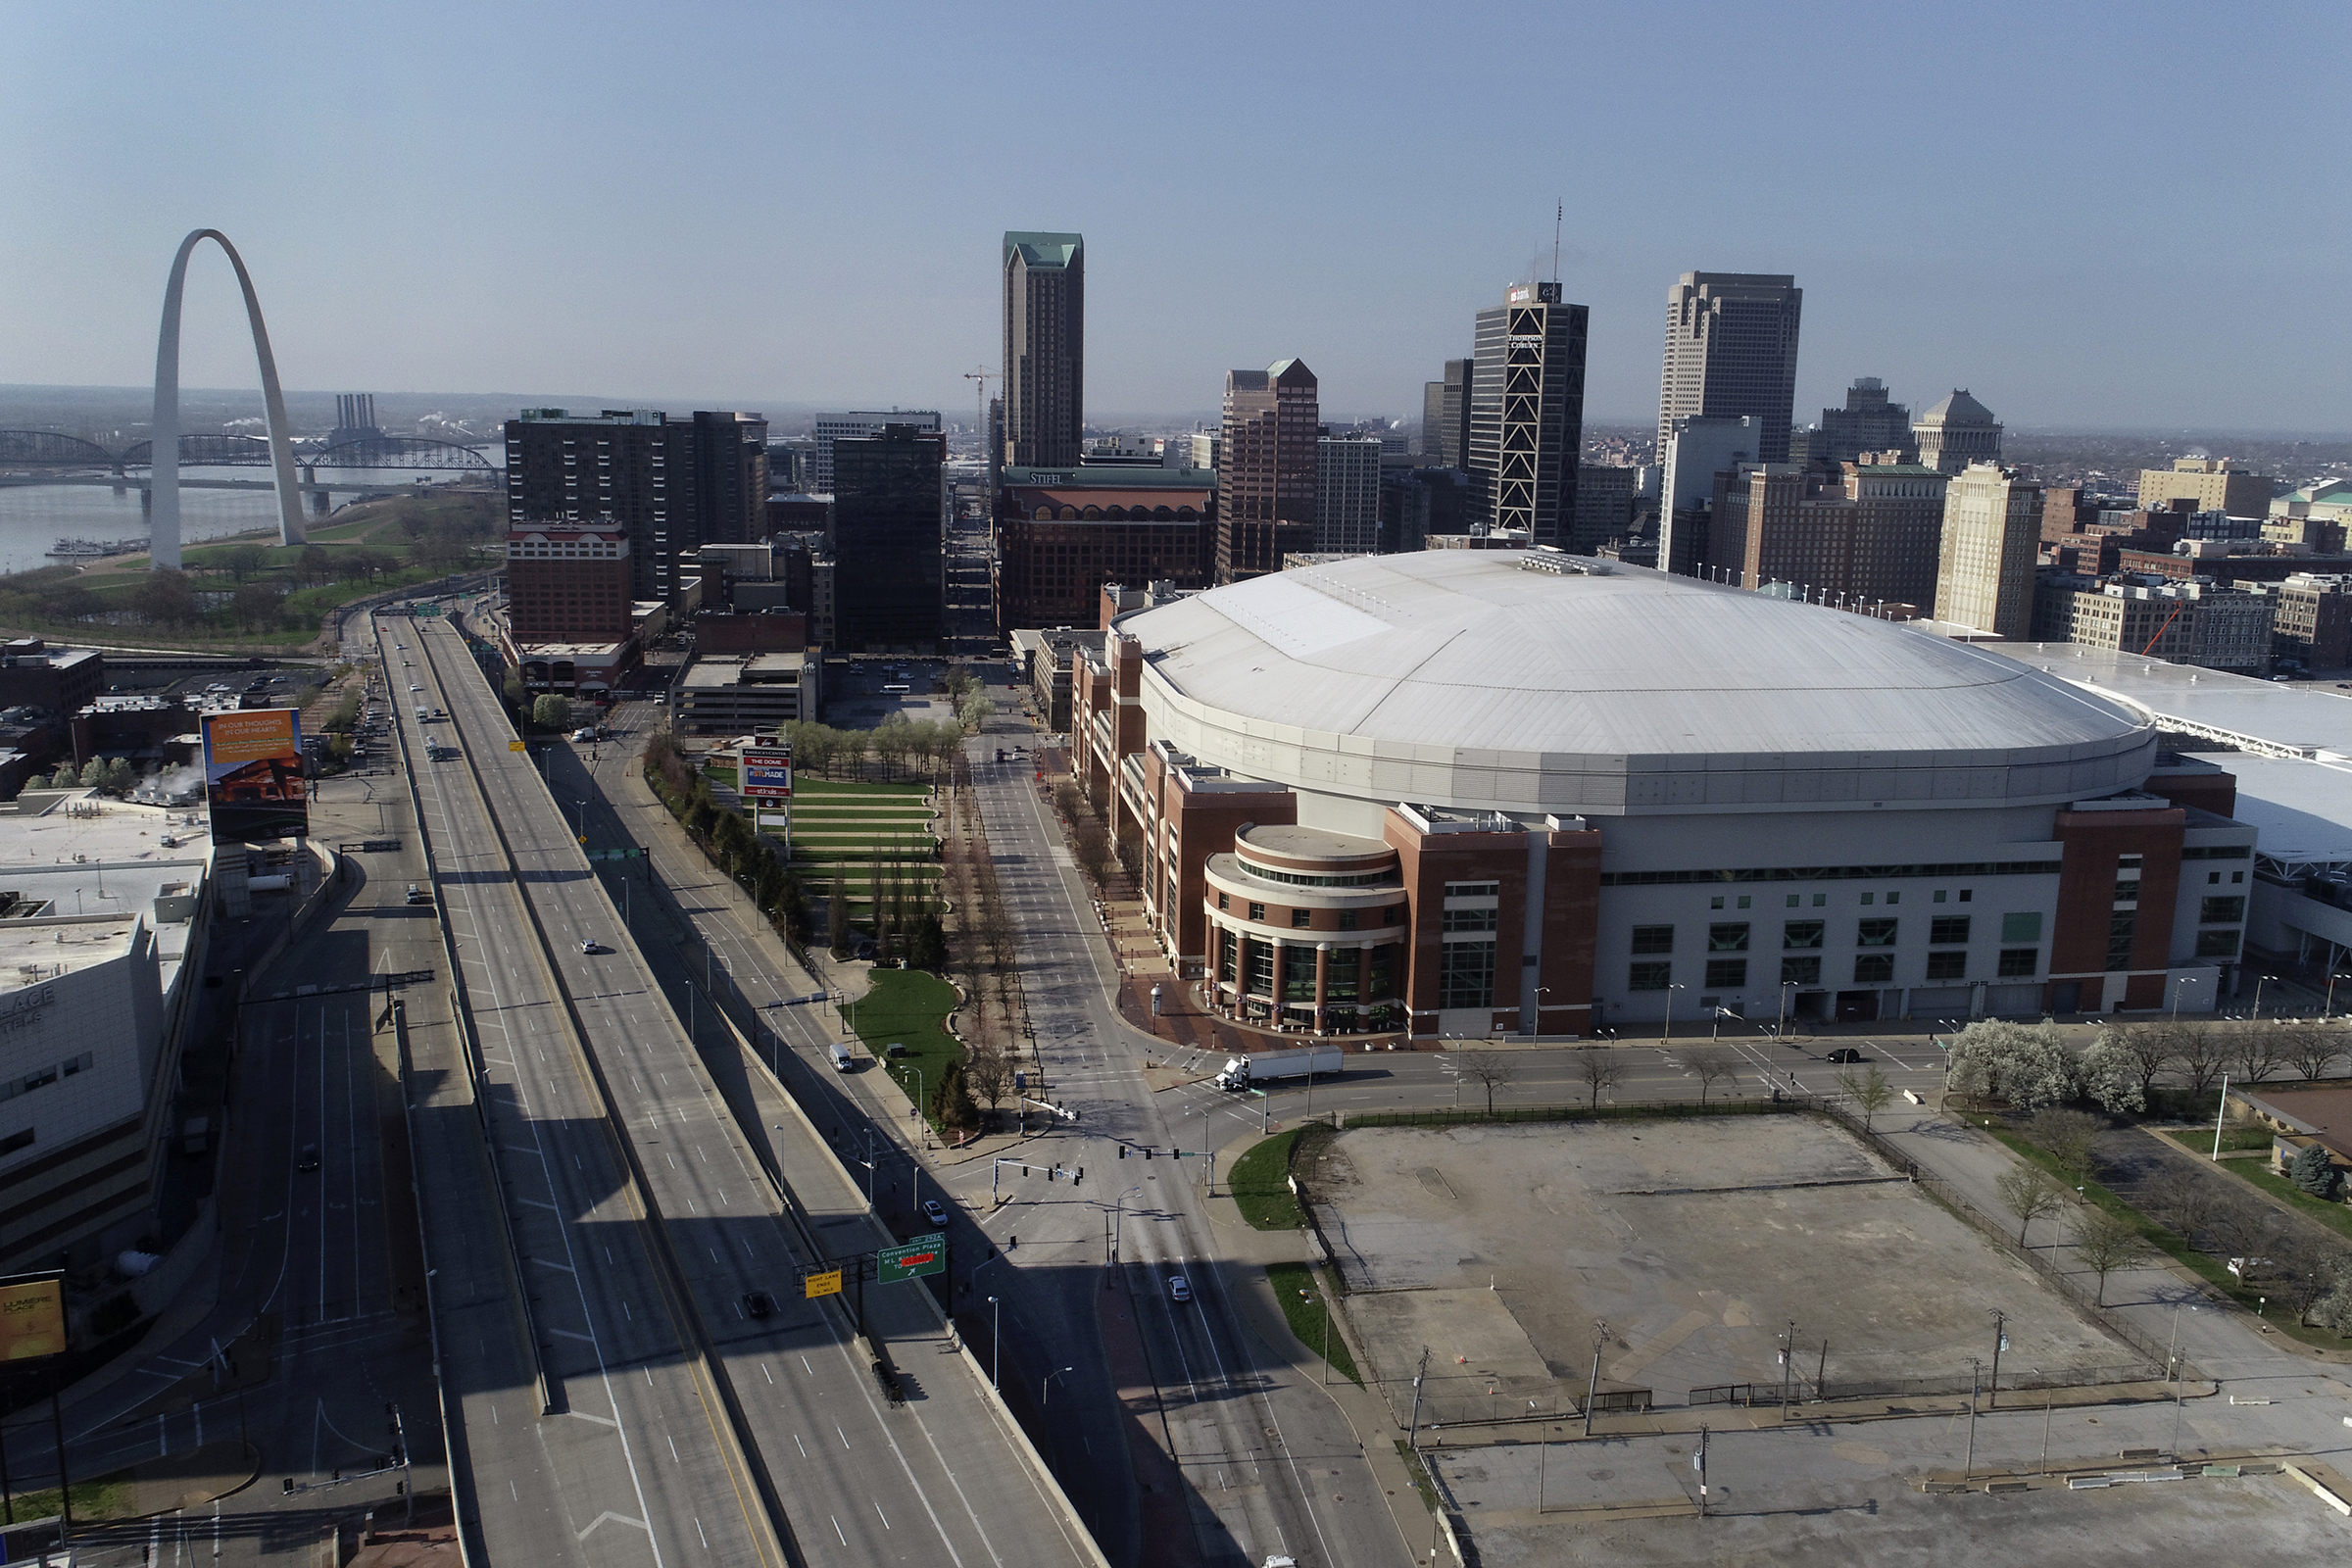 The Dome at America's Center Wednesday, April 1, 2020, in St. Louis, Missouri.